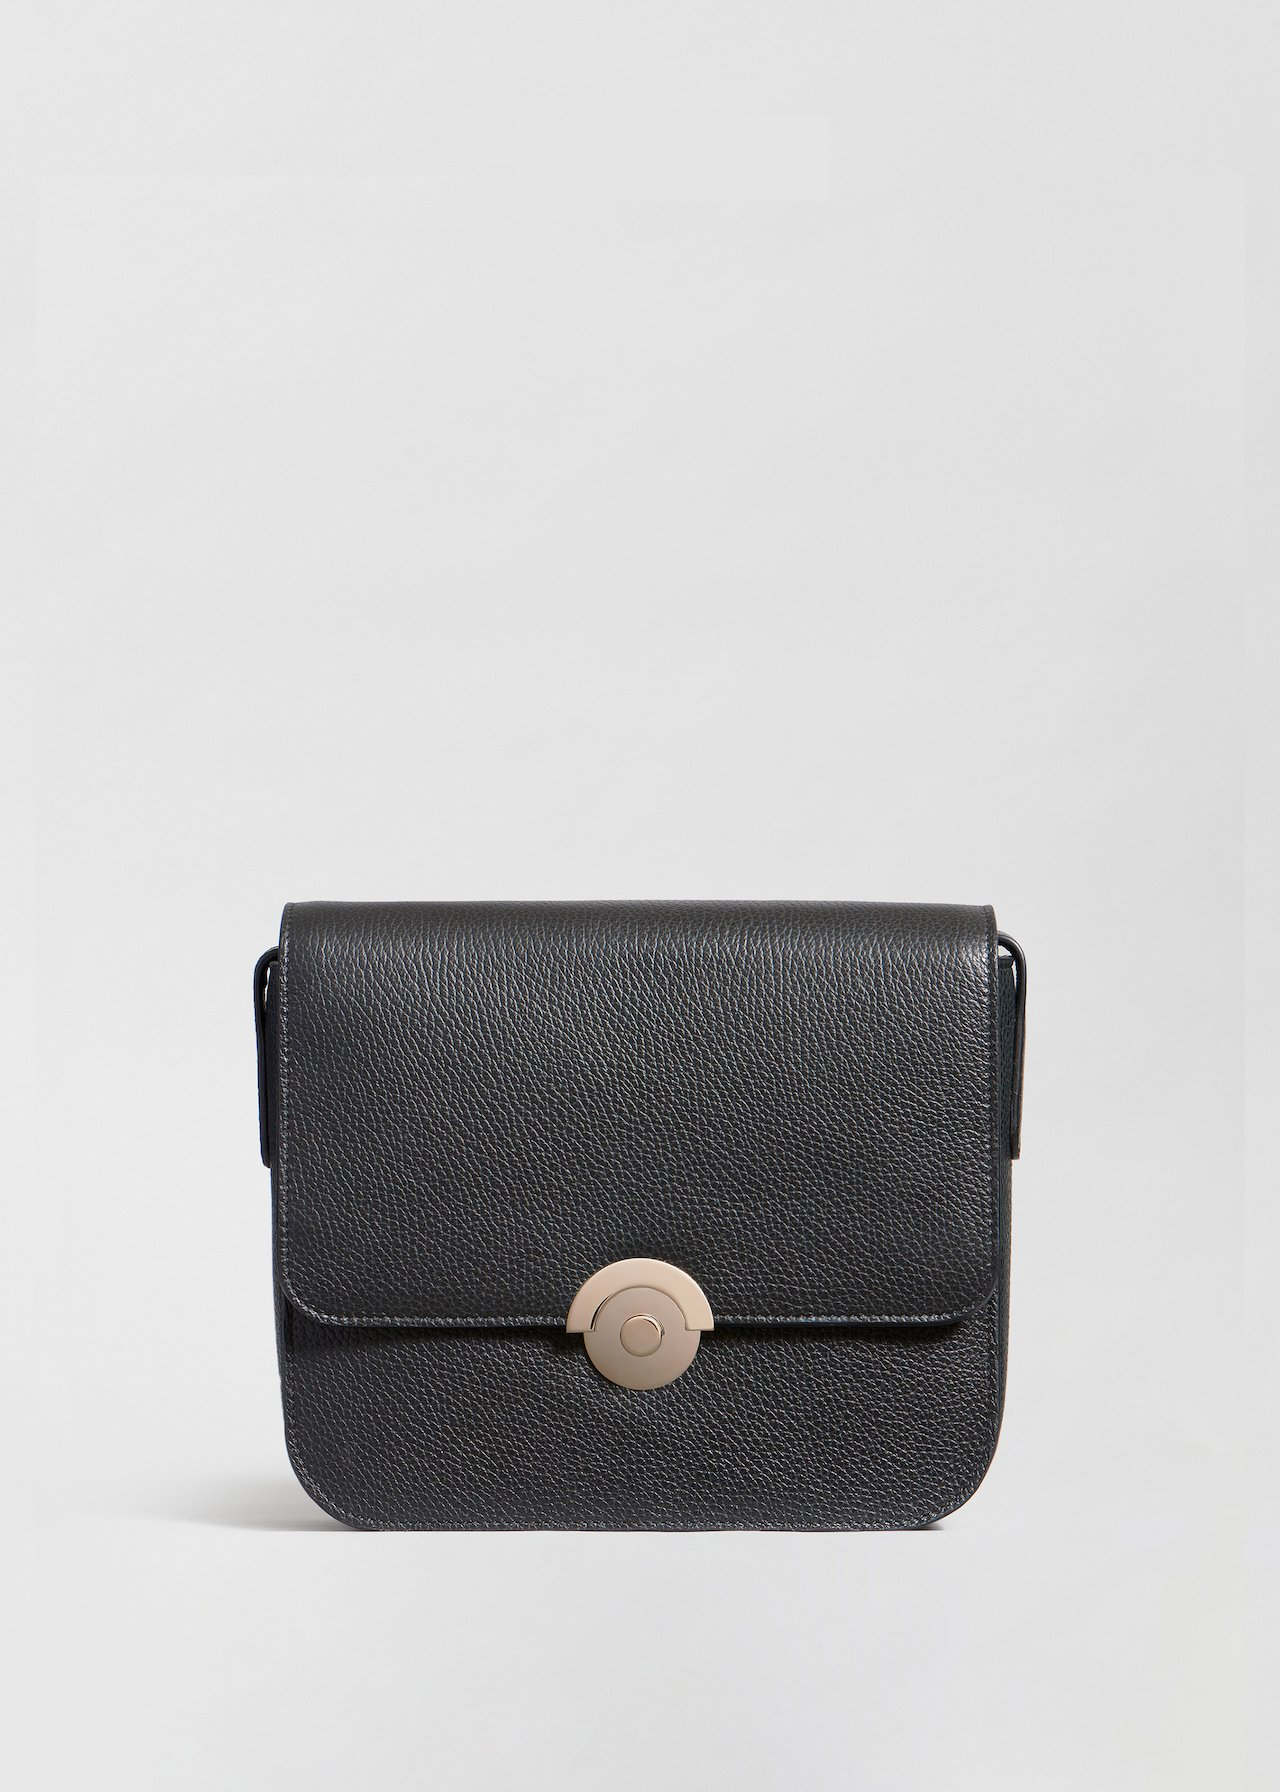 Box Bag in Pebbled Leather - Olive in Black by Co Collections